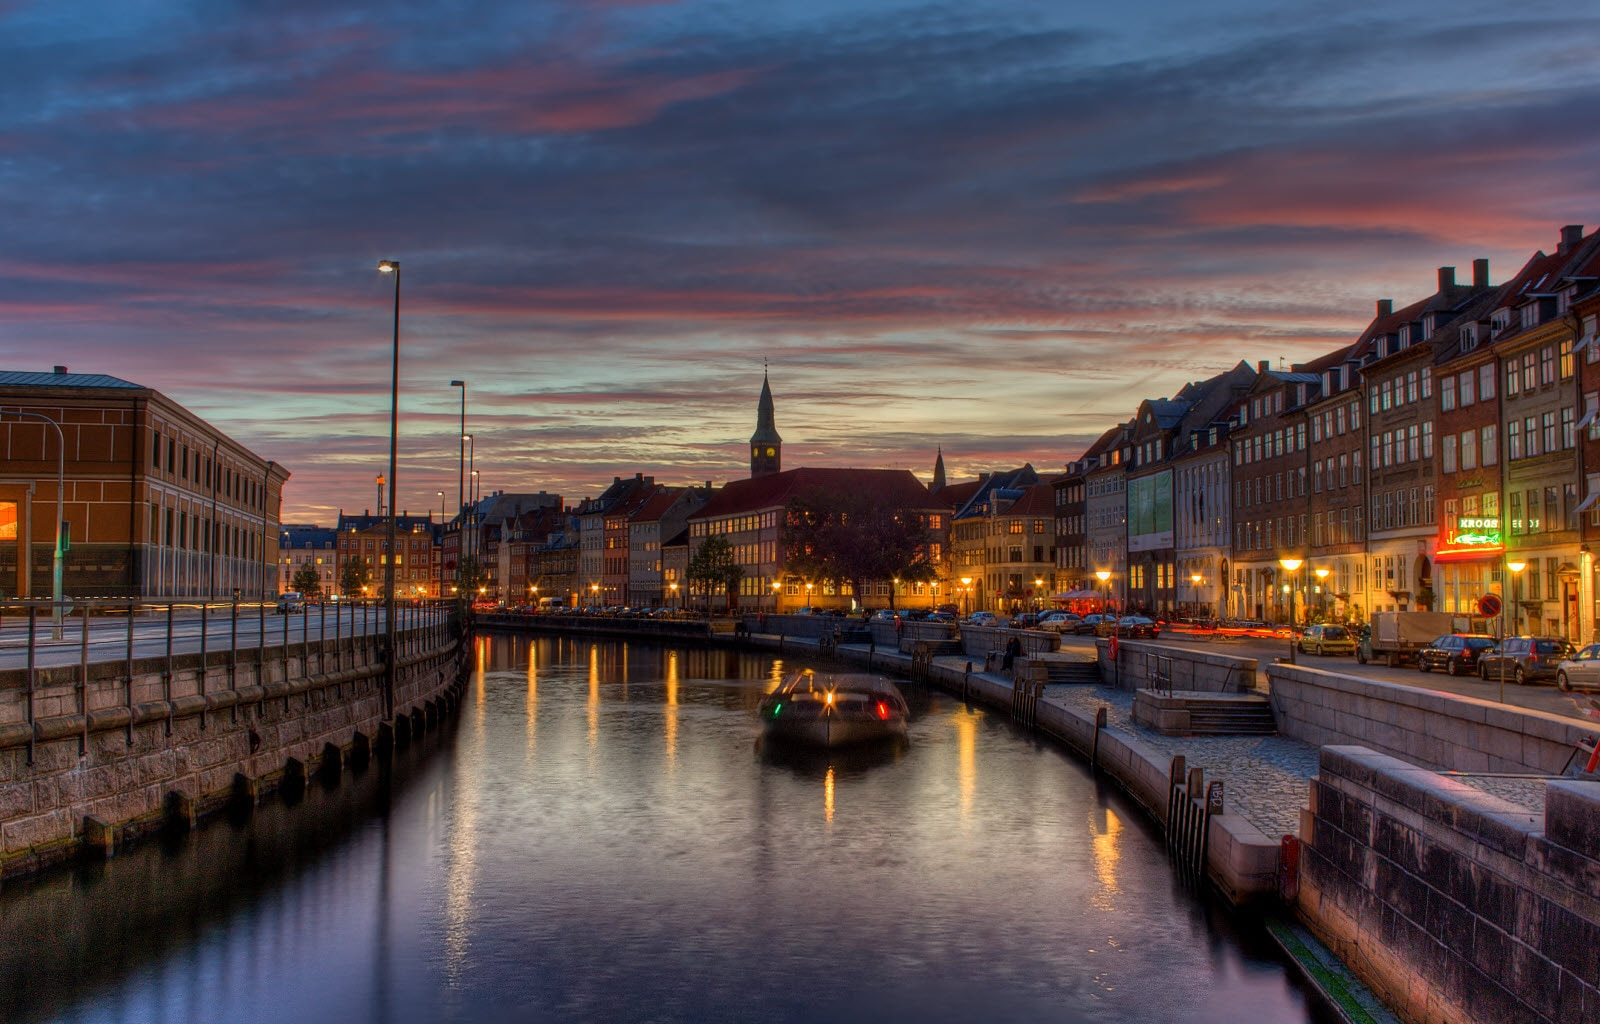 Nyhavn in Copenhagen by night.